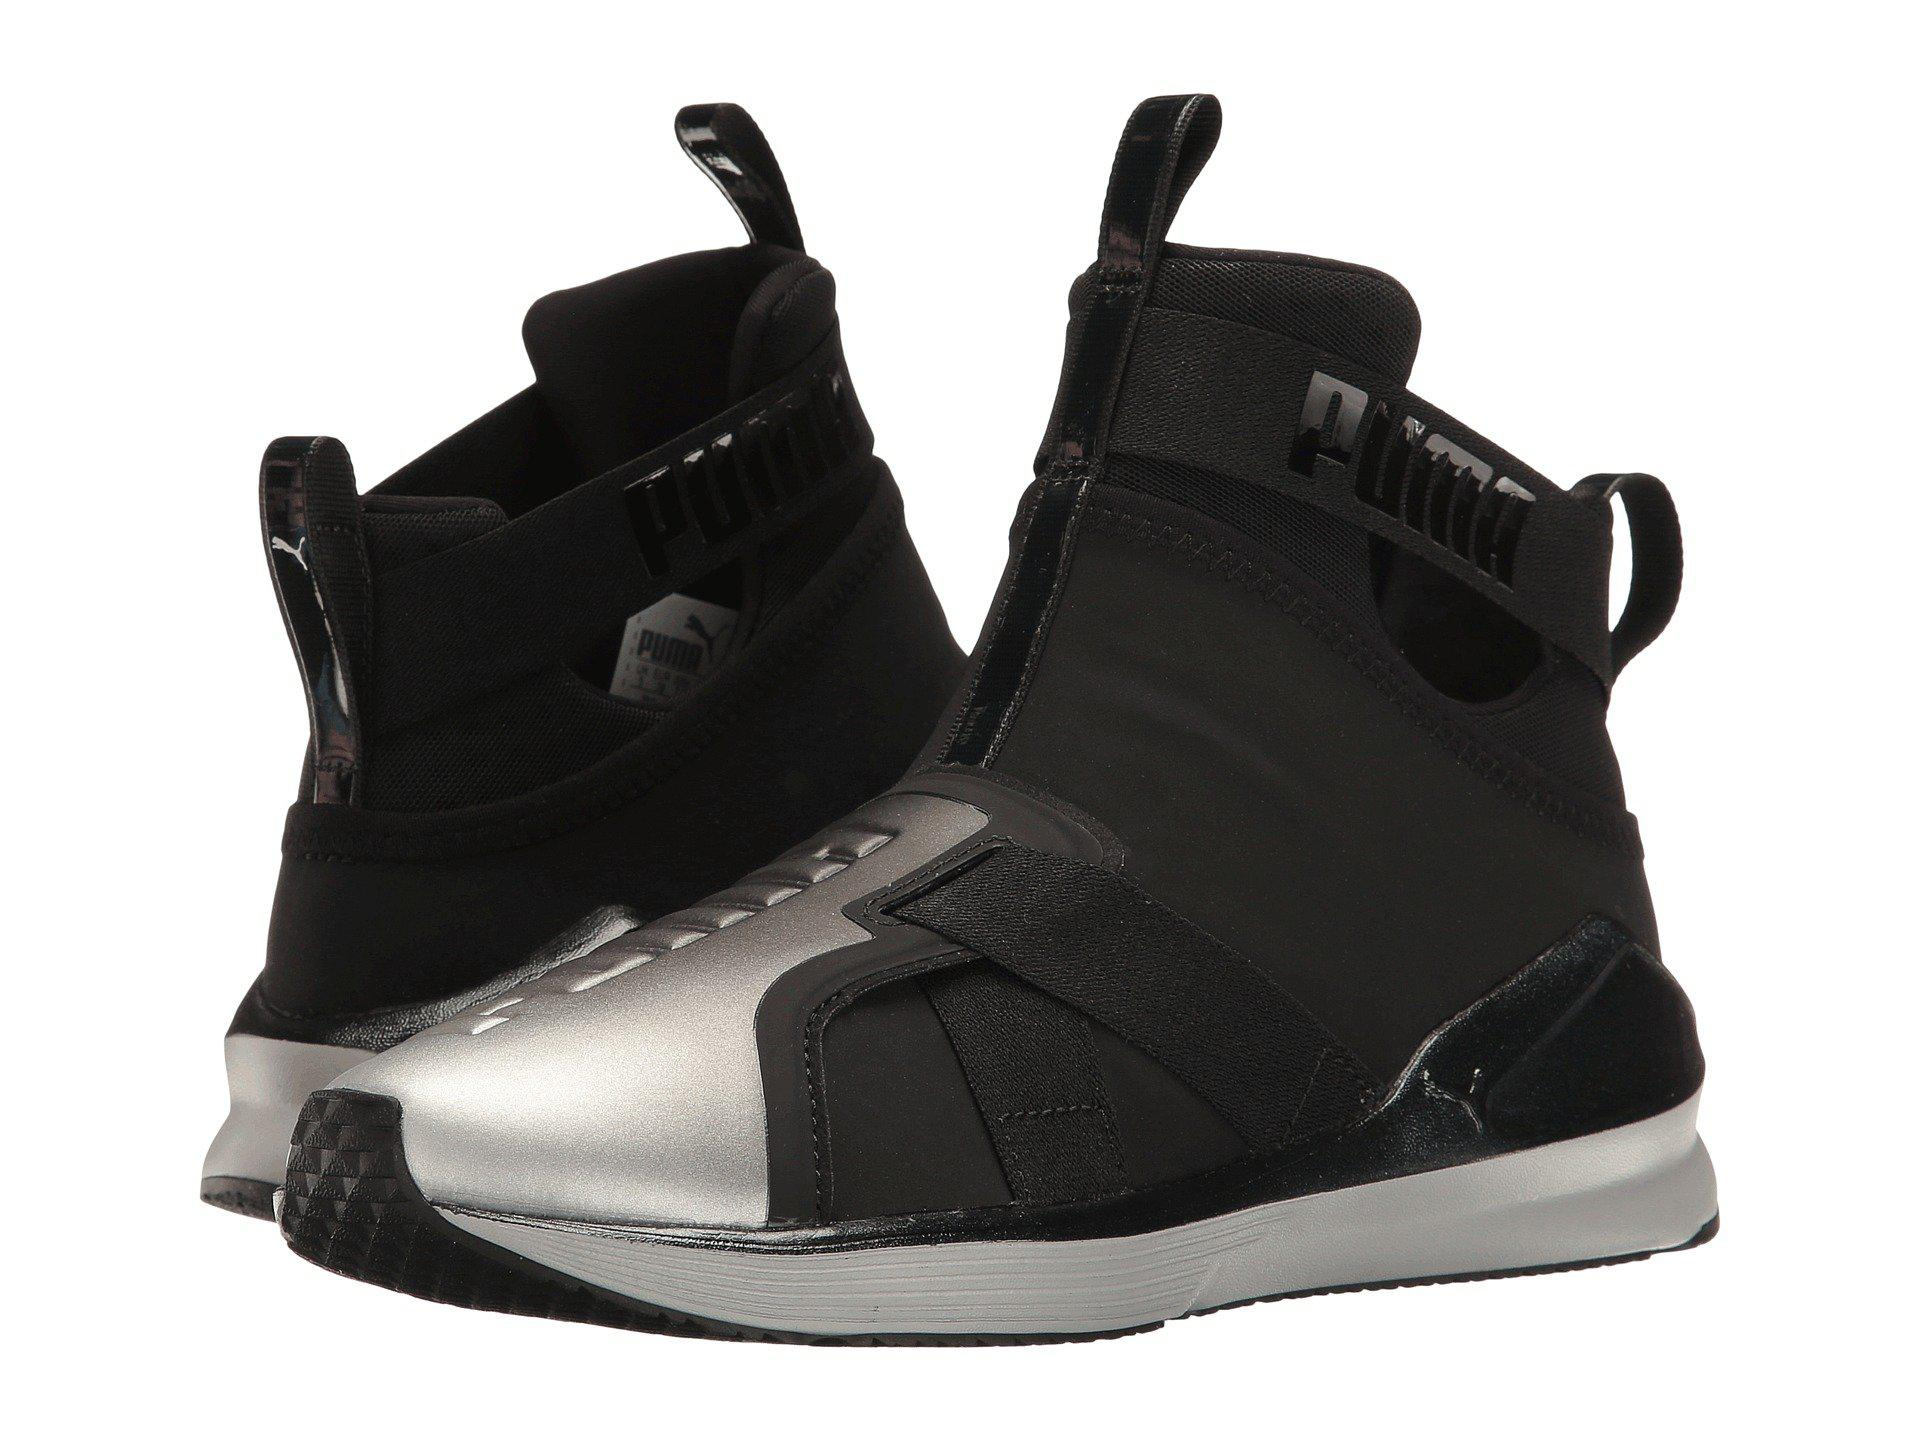 PUMA. Men's Black Fierce Strap Metallic